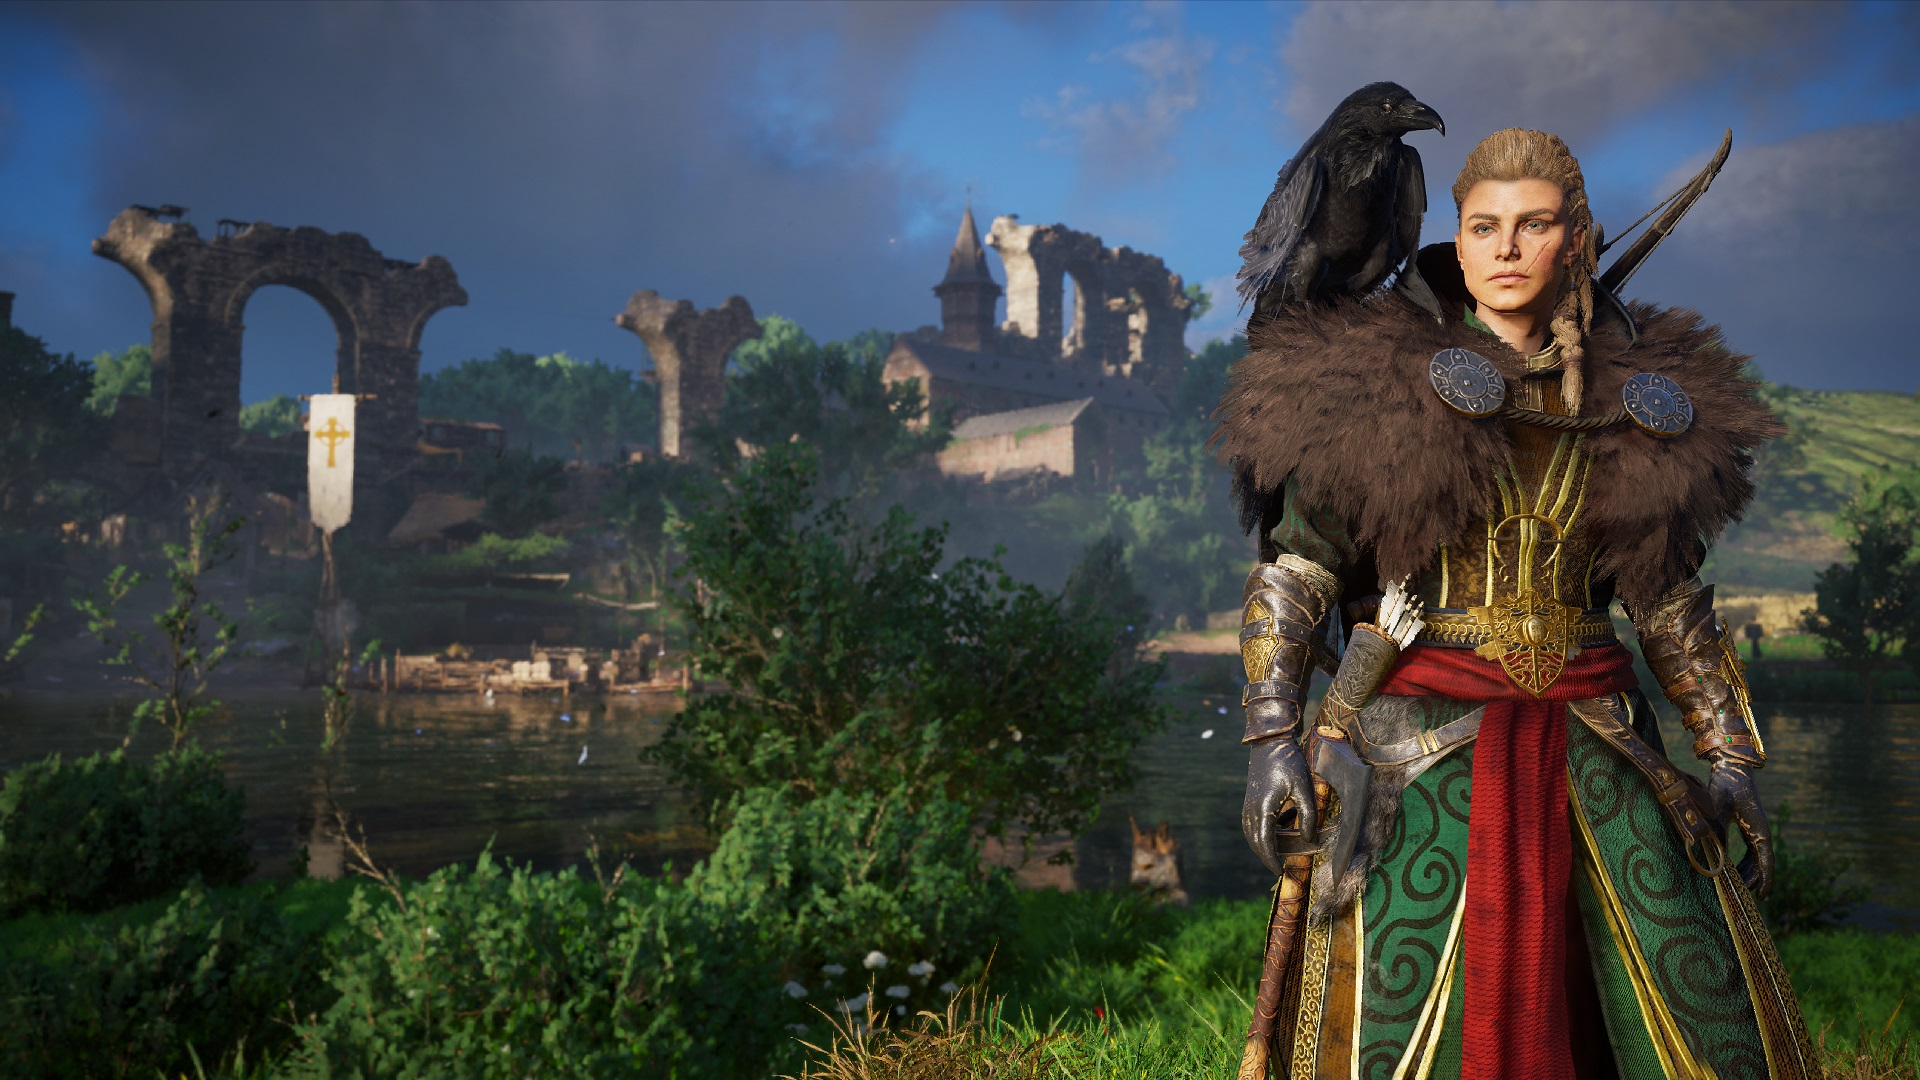 A whole lot of you are playing Assassin's Creed Valhalla screenshot